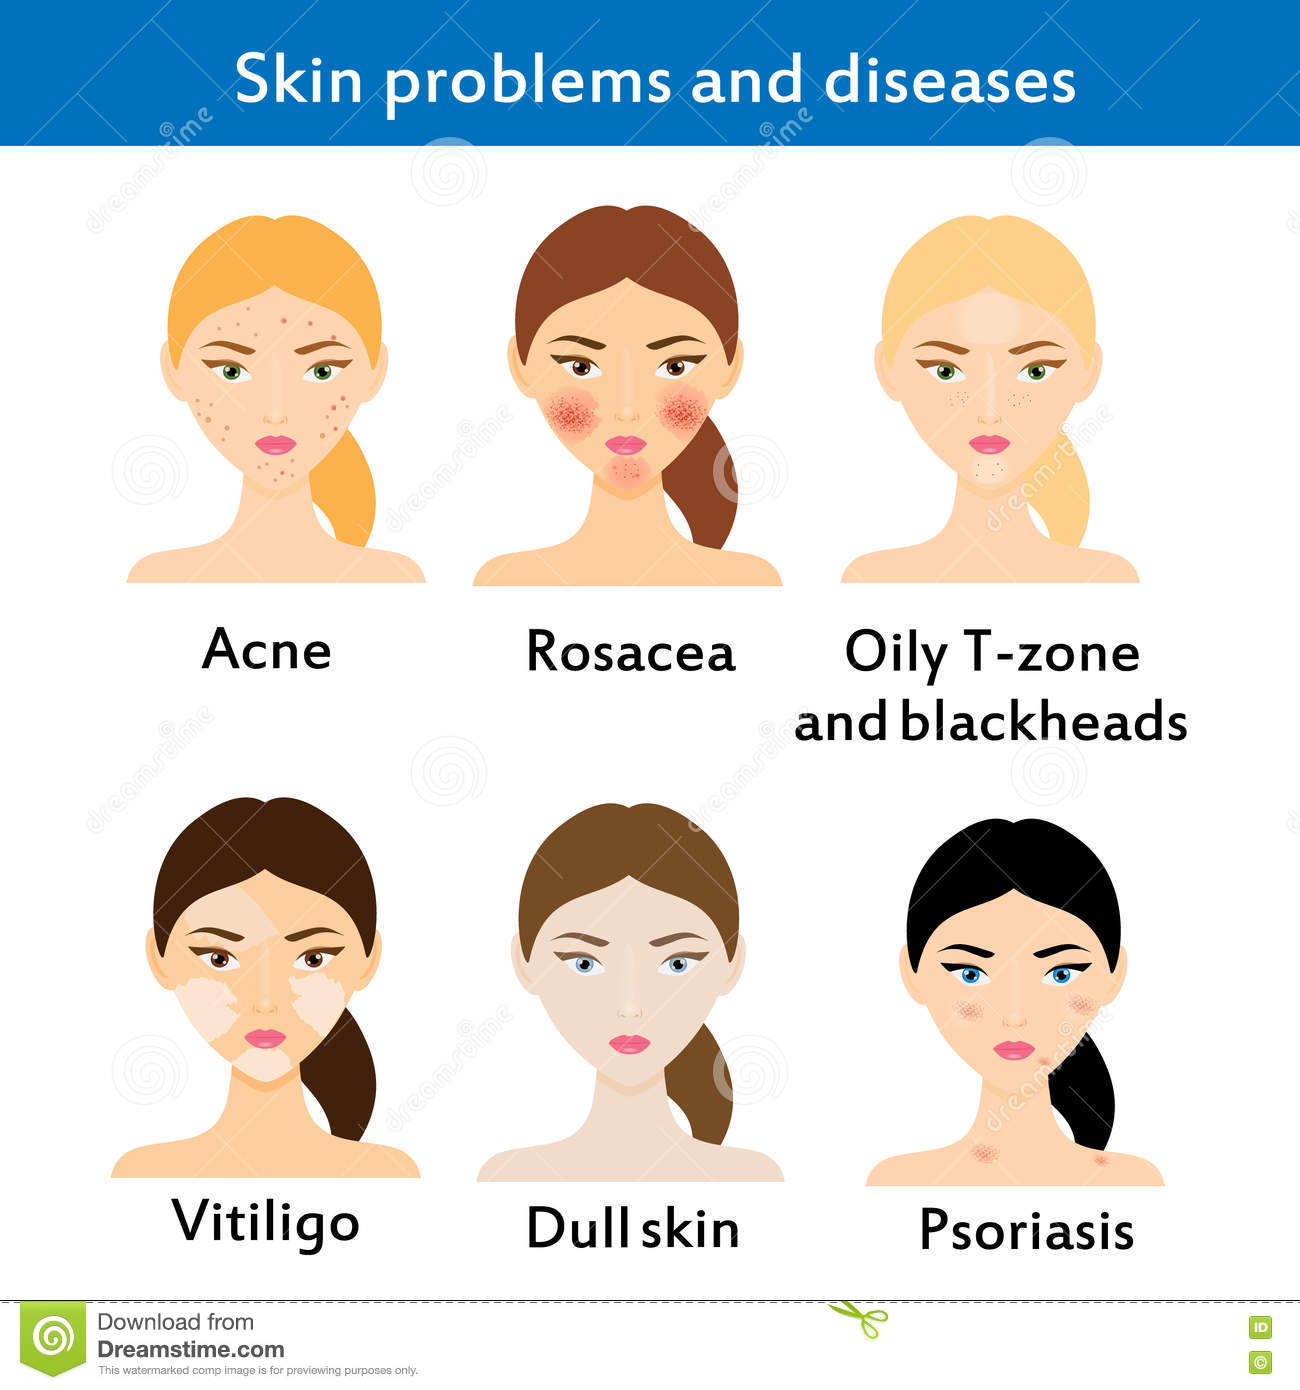 Skin problems and diseases